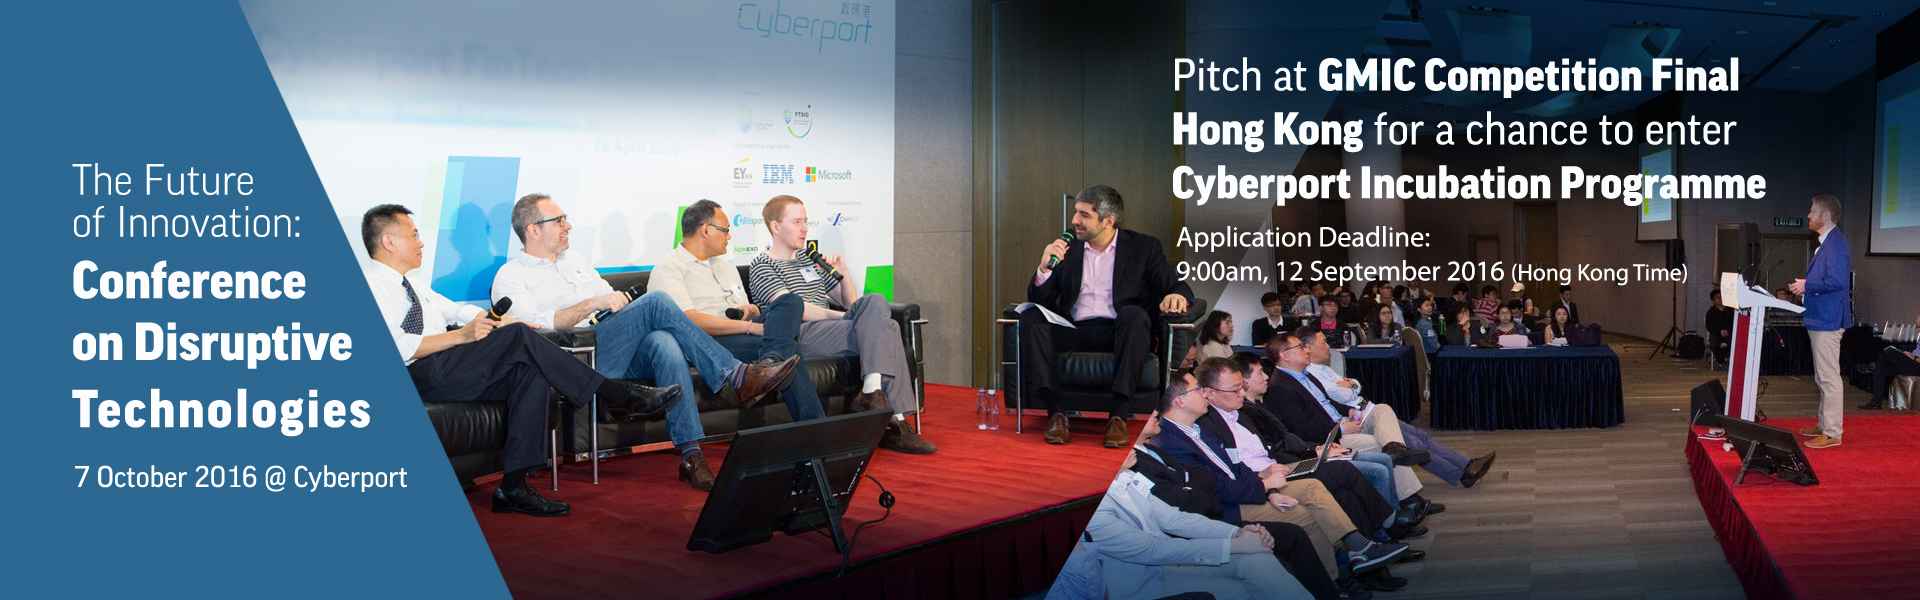 Unmissable event for tech start-ups to gain valuable networks with venture capitalists, industry leaders and experts!